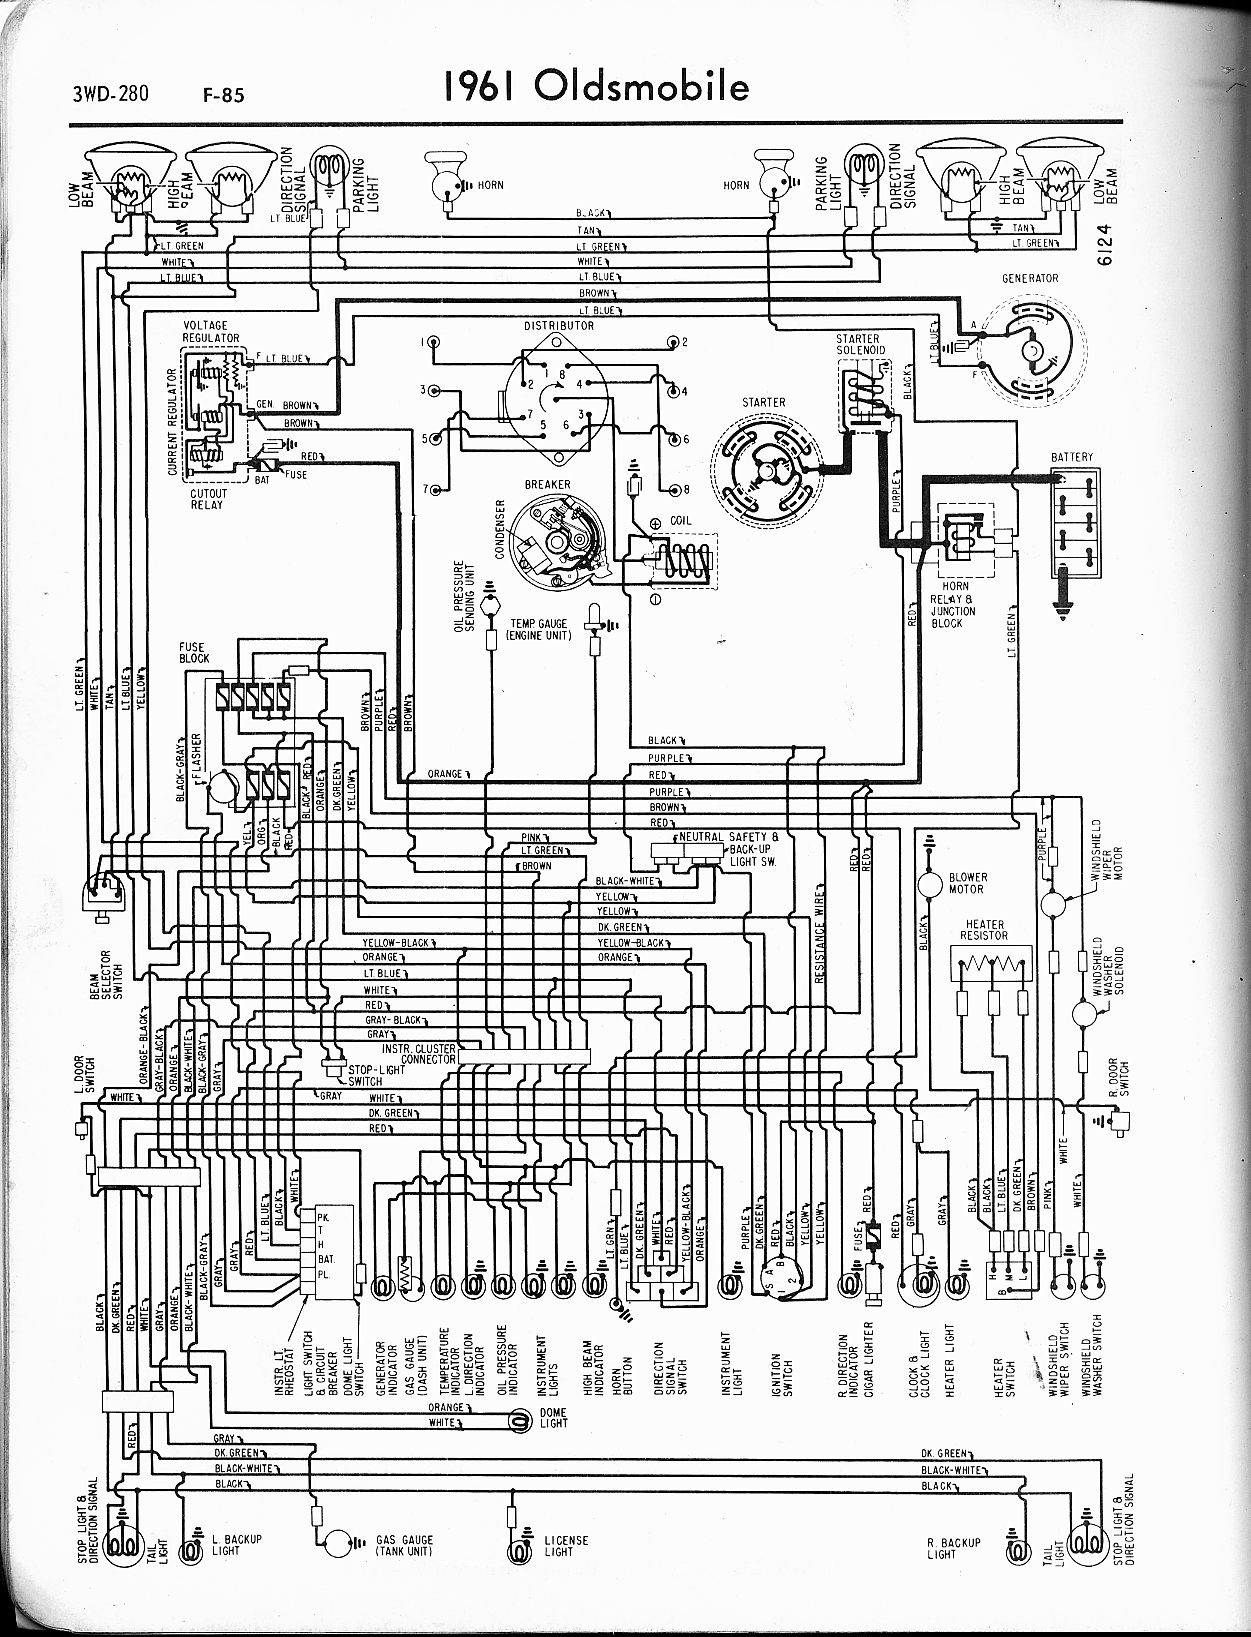 Olds Wiring Harness Simple Diagram Boat Oldsmobile Diagrams The Old Car Manual Project